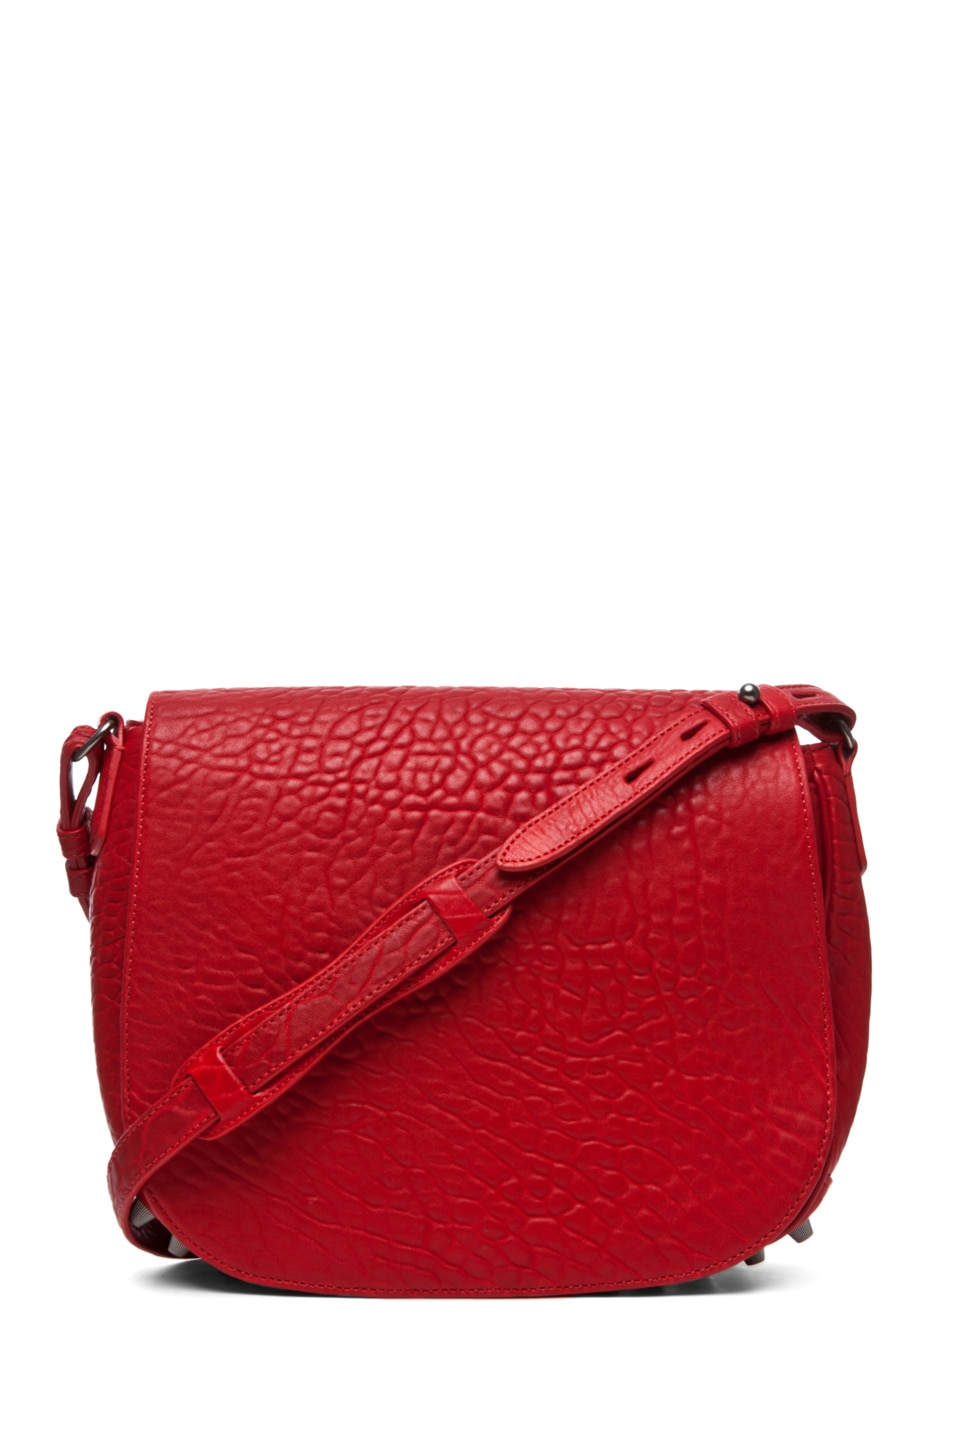 Image 1 of Alexander Wang Lia Pebble Bag in Cayenne